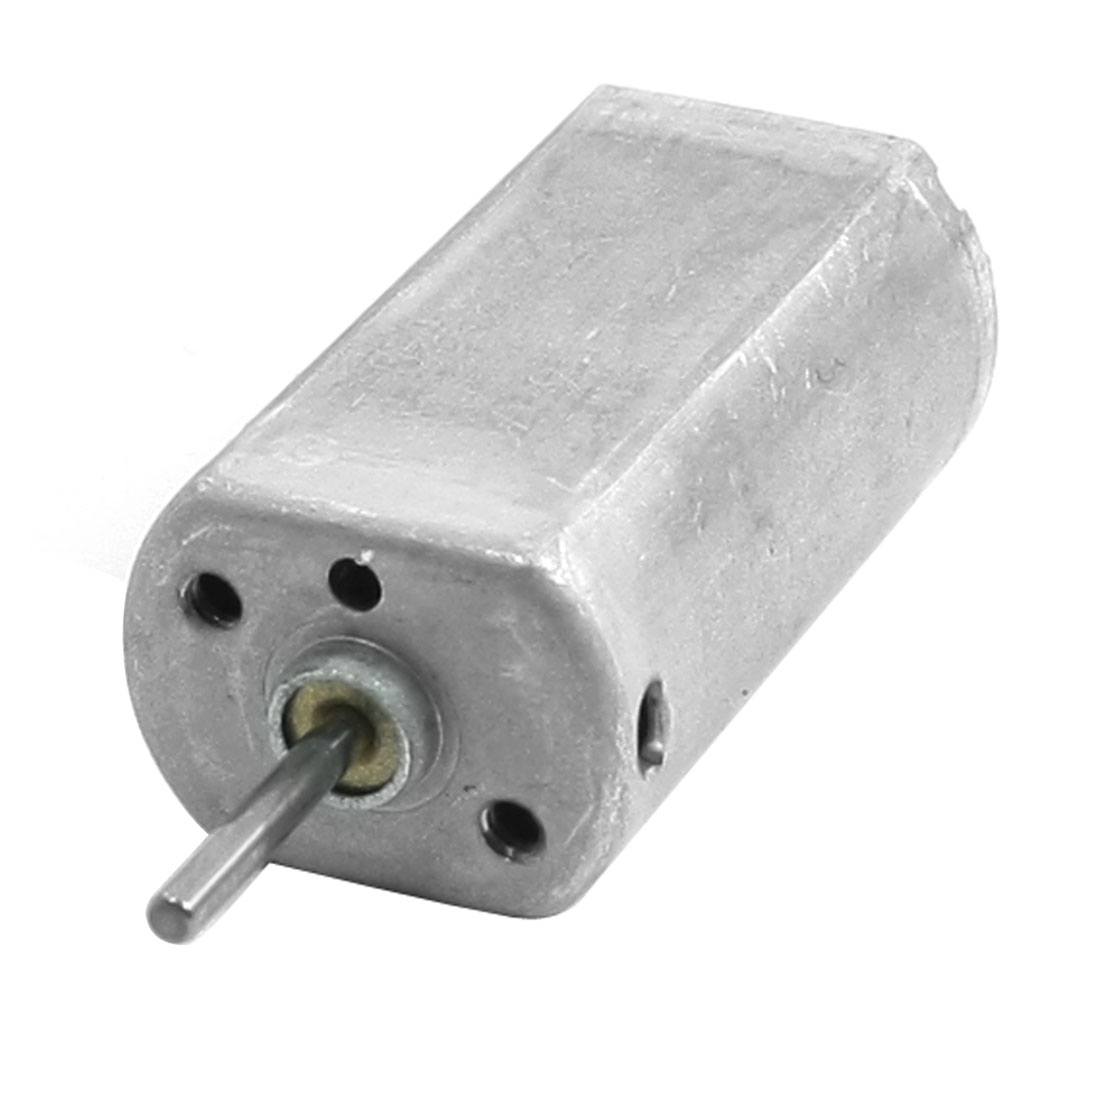 DC 6V 20000RPM Output Speed Gear Box Micro Electirc Geared Motor